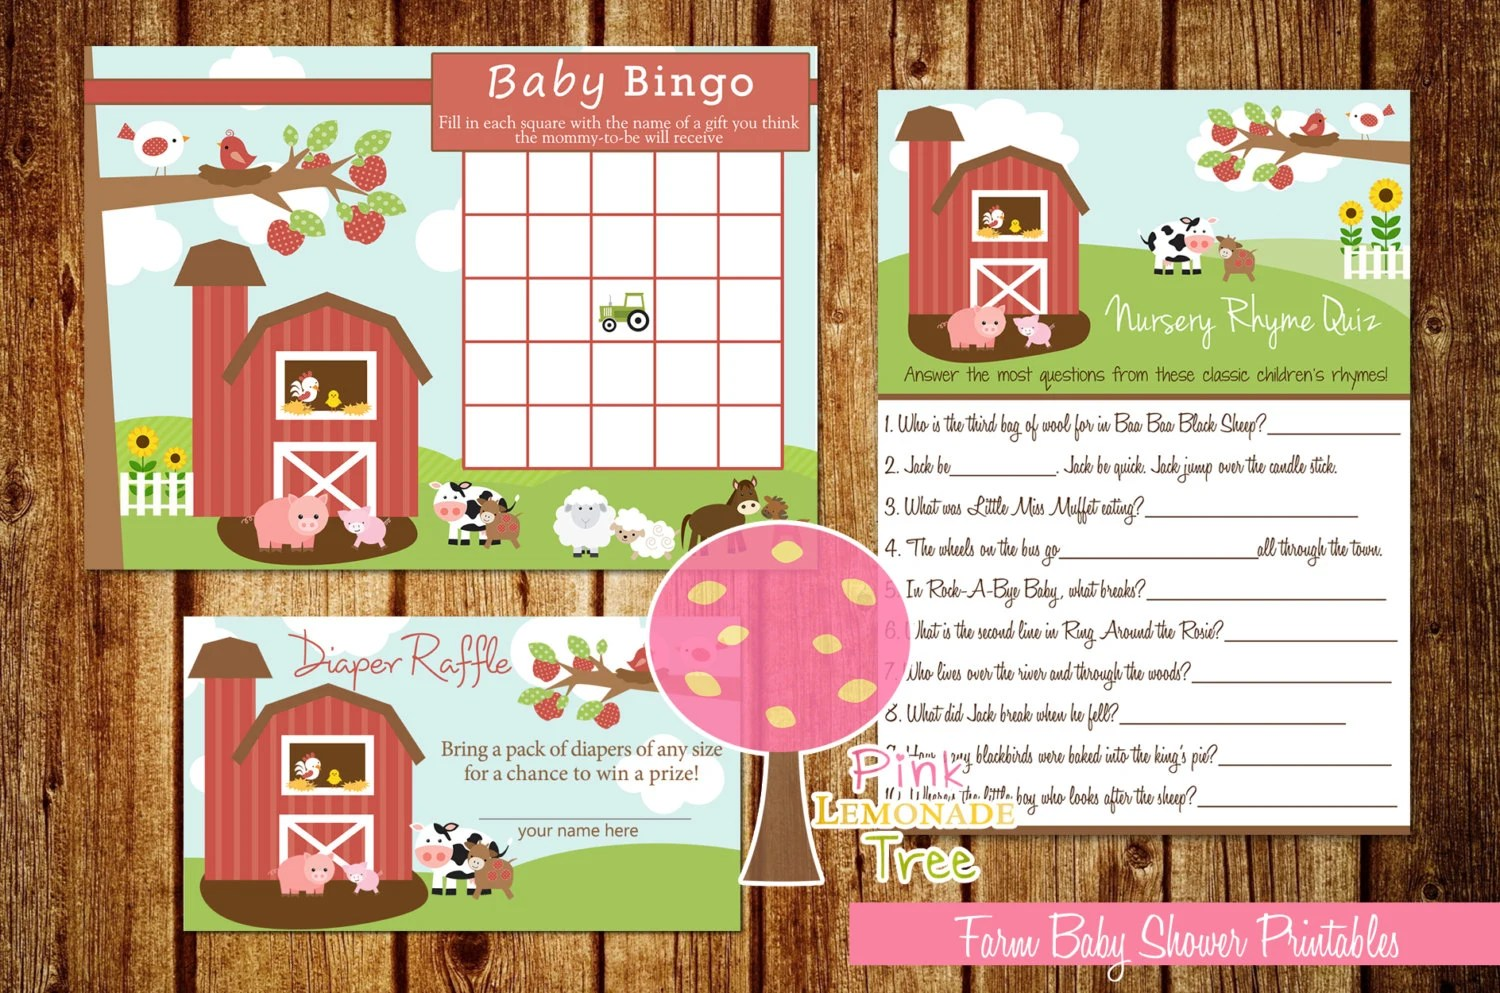 Farm Baby Shower Games Baby Bingo Nursery Rhymes Quiz